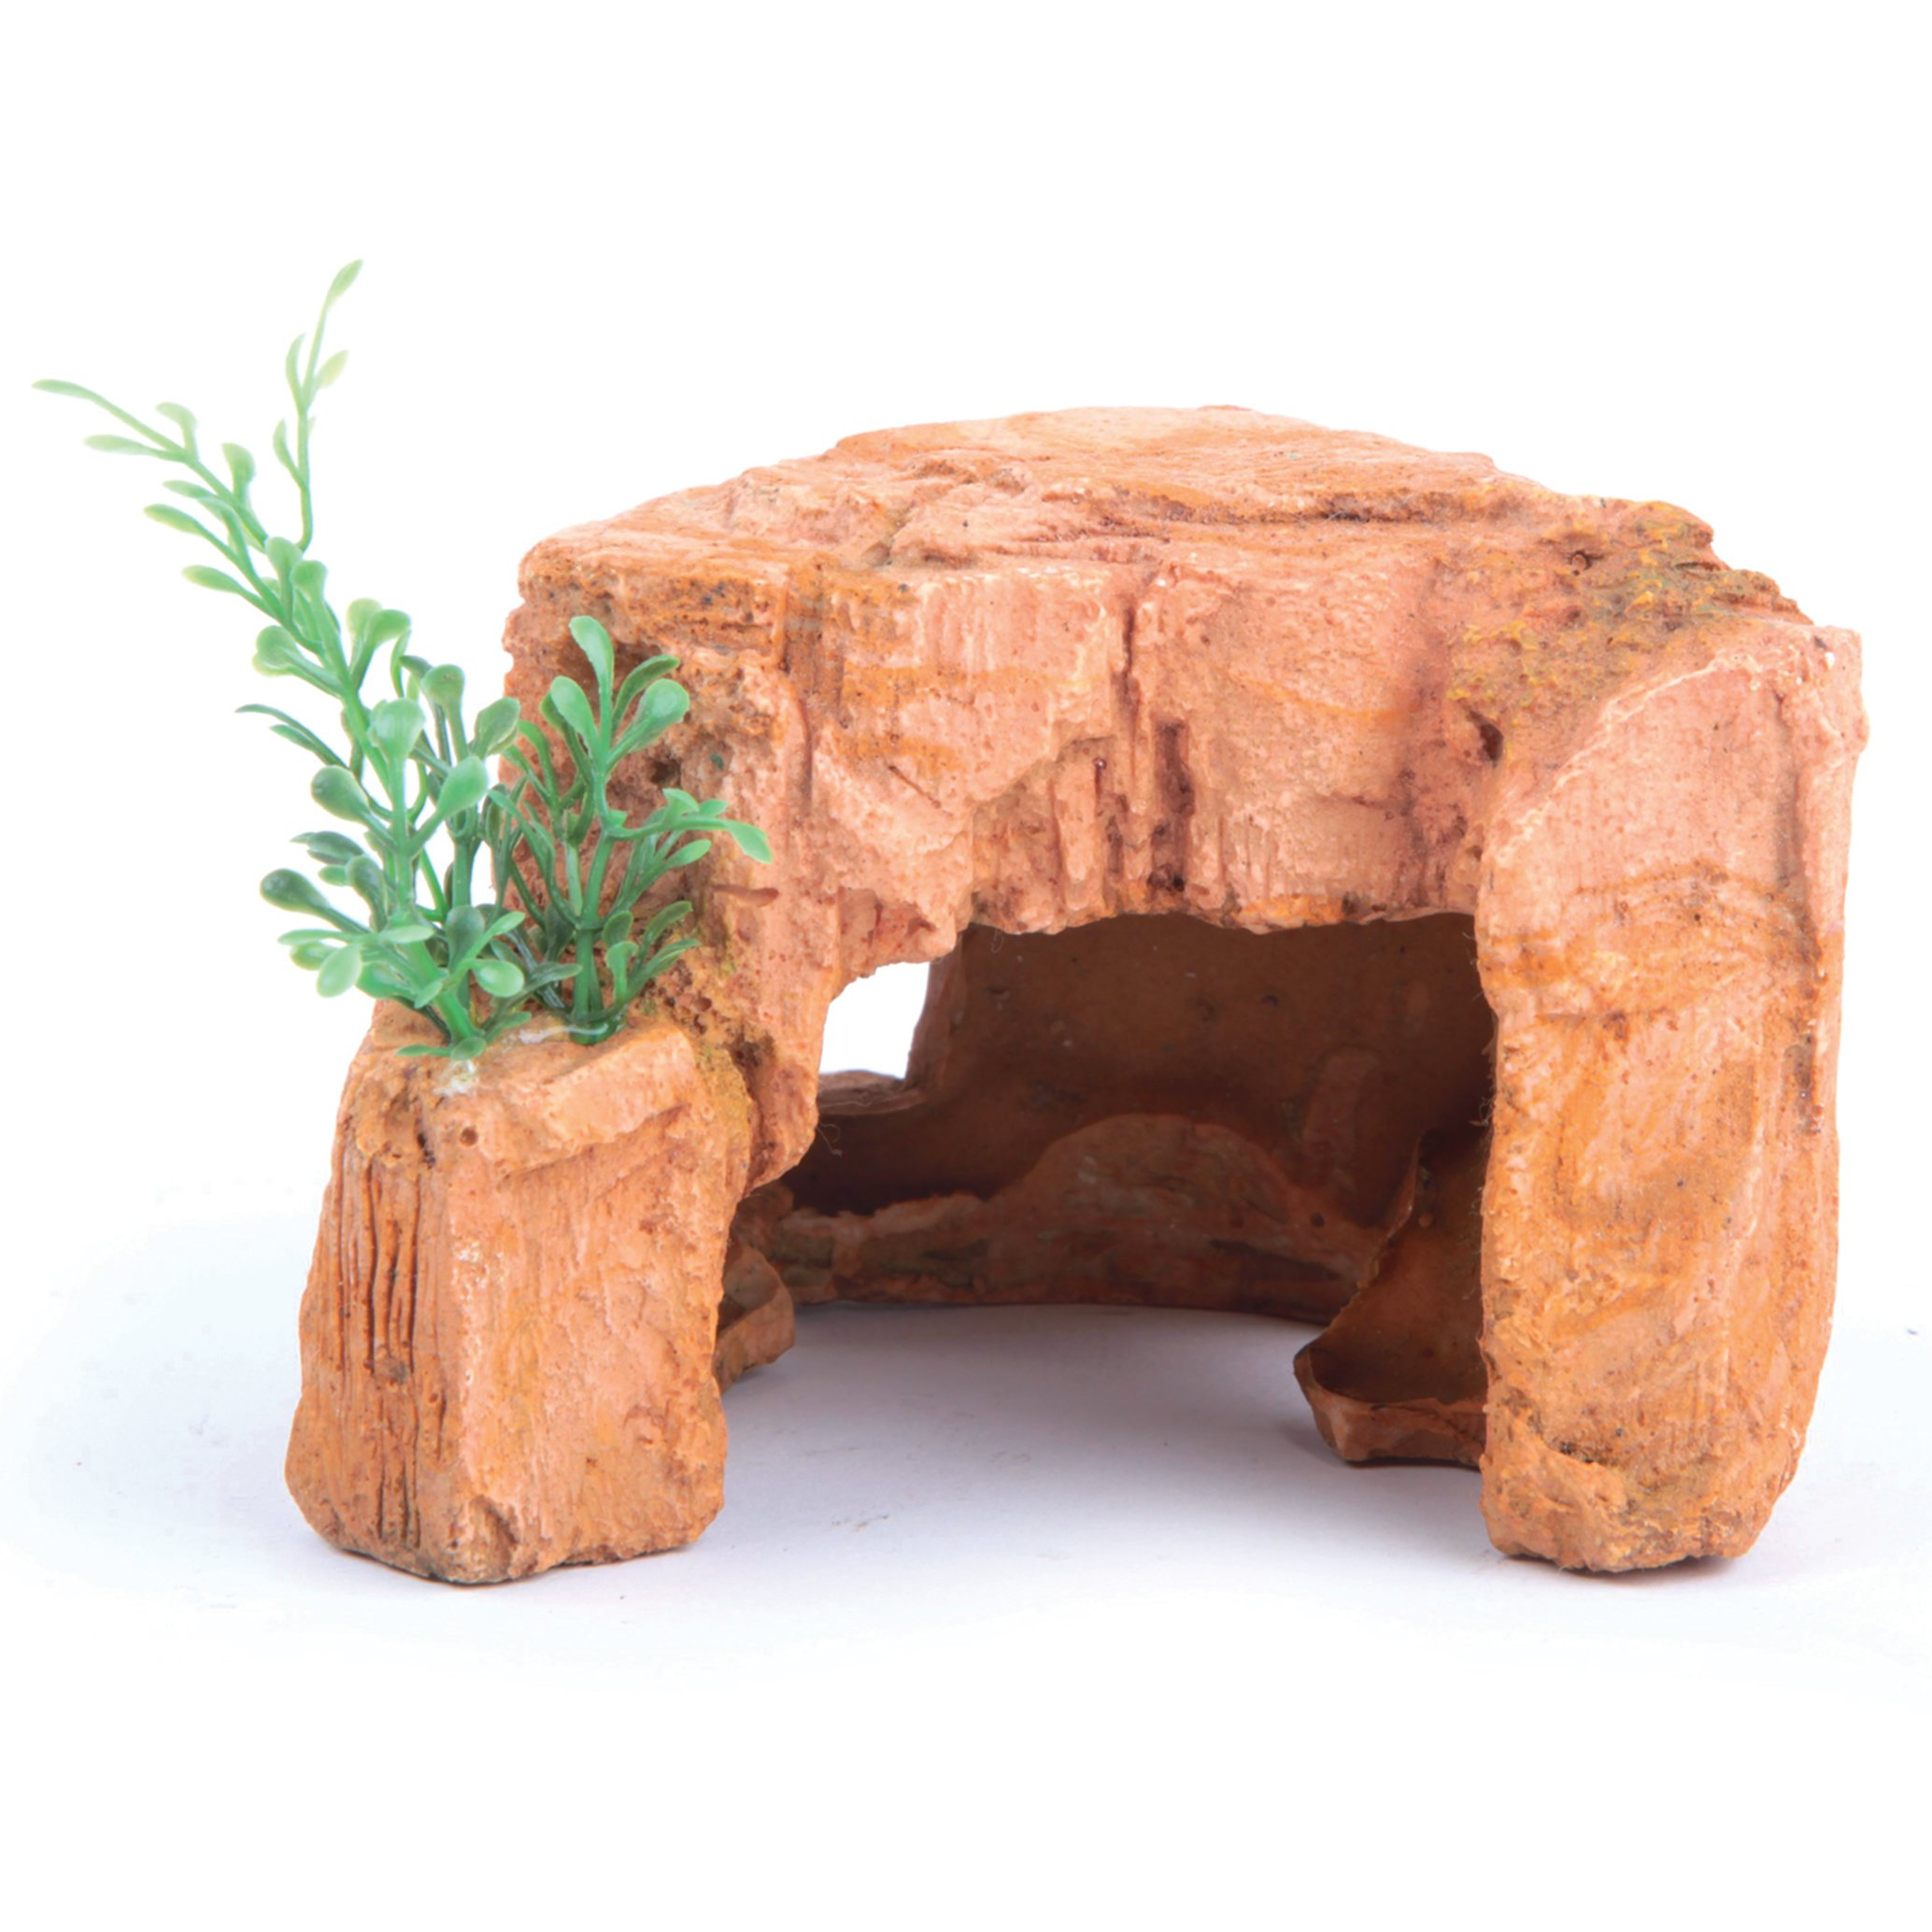 Sandstone Rock With Plant – Mini